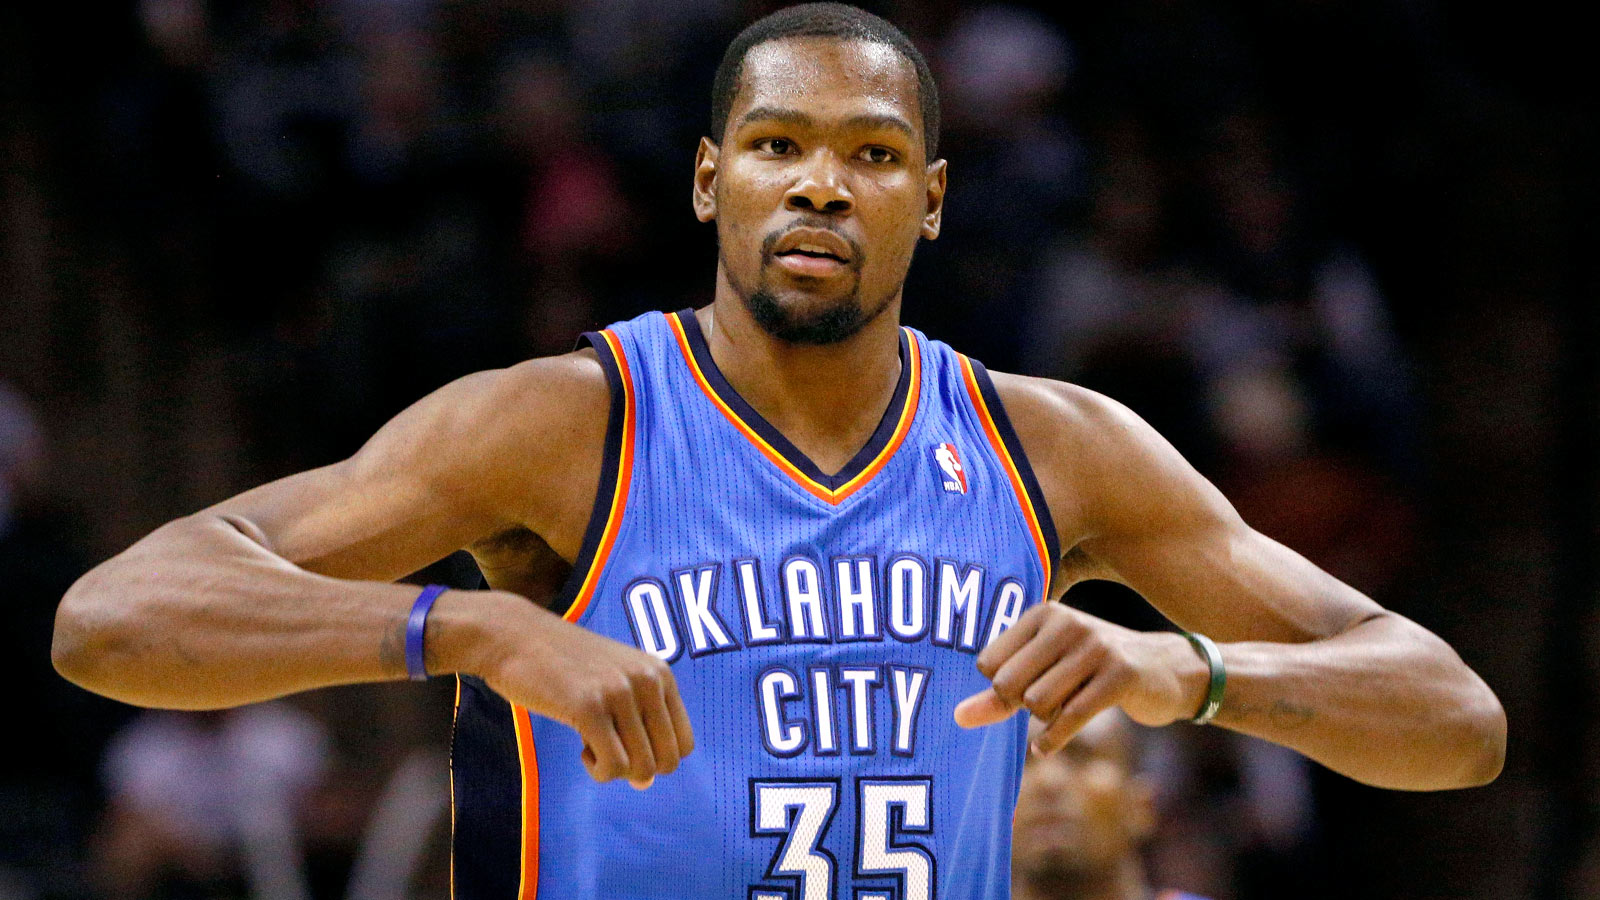 Jan 22, 2014; San Antonio, TX, USA; Oklahoma City Thunder forward Kevin Durant (35) reacts after a shot during the second half against the San Antonio Spurs at AT&T Center. The Thunder won 111-105. Mandatory Credit: Soobum Im-USA TODAY Sports